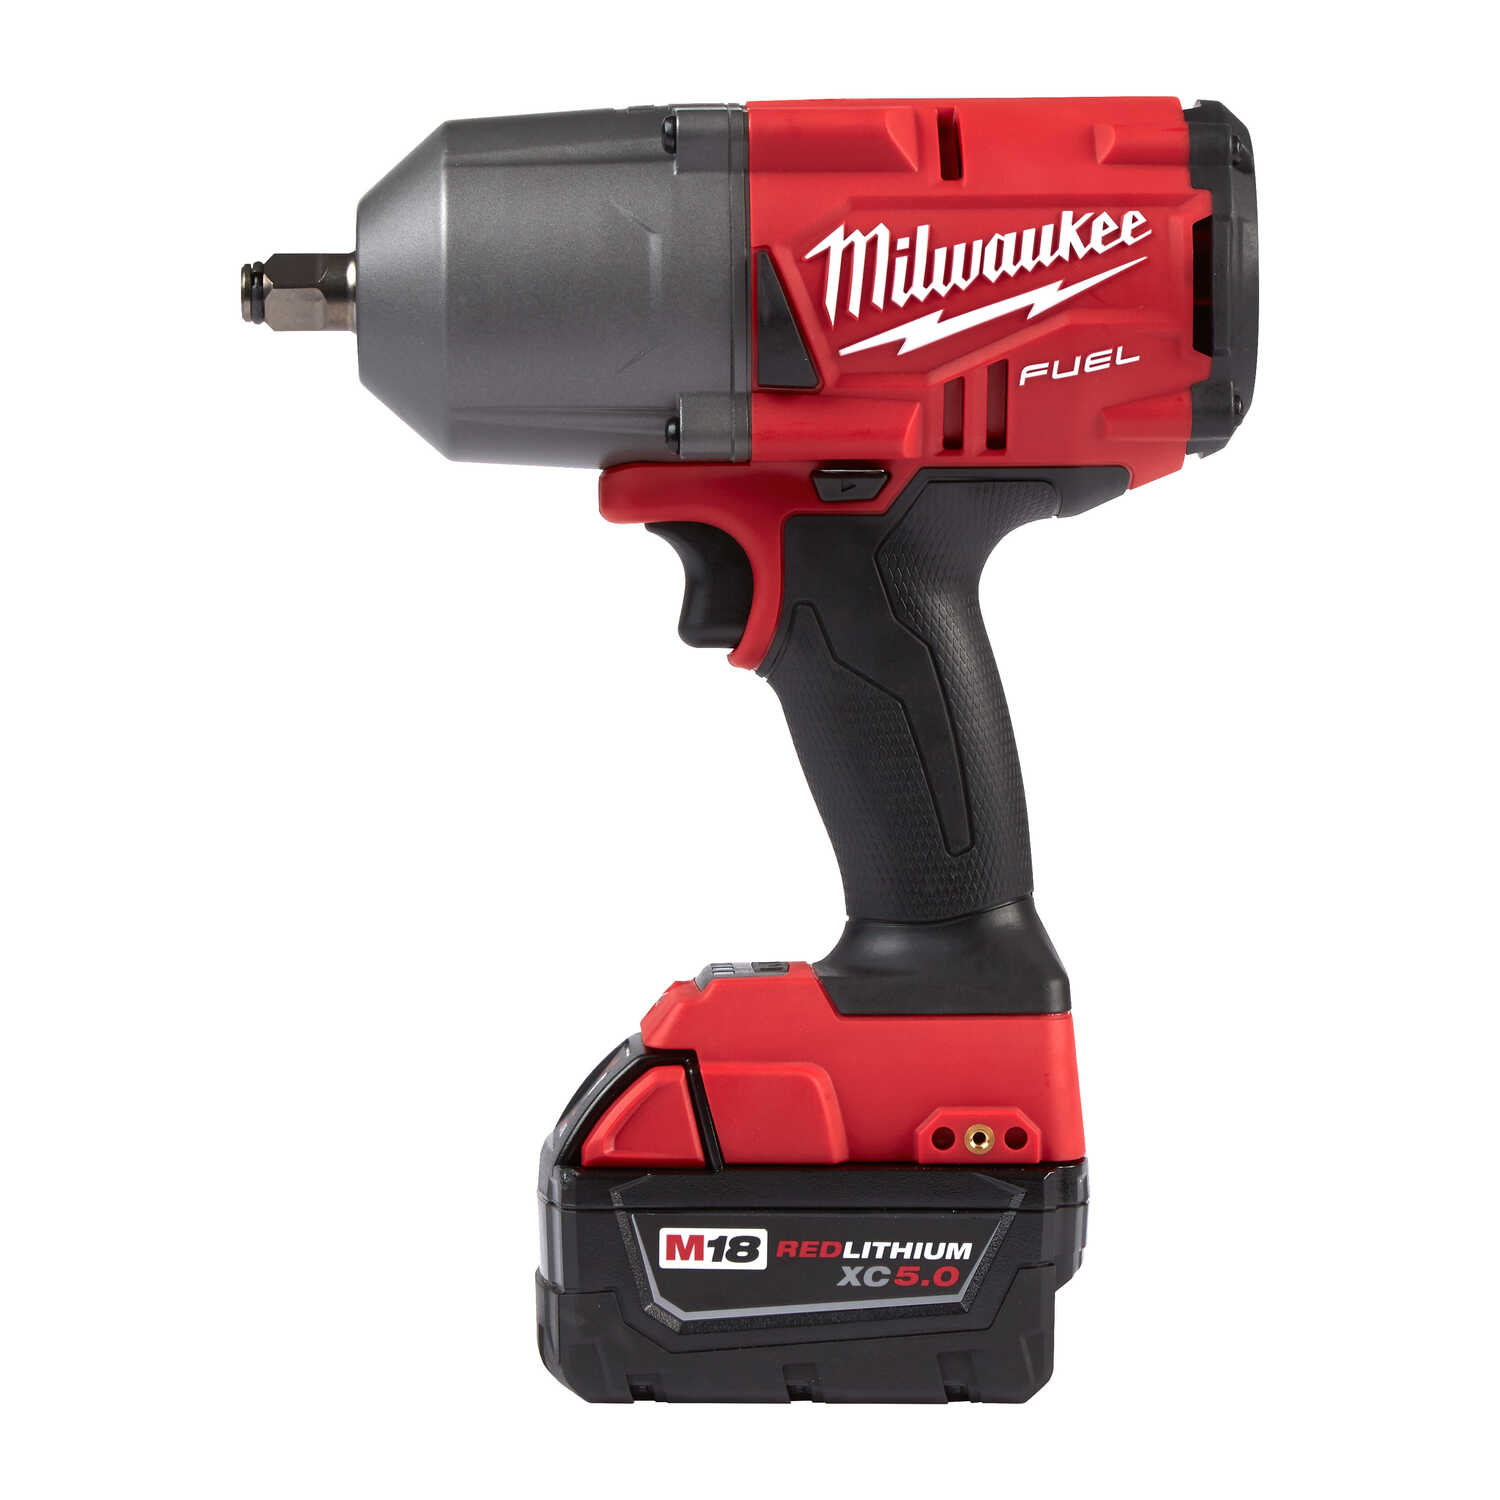 Milwaukee  M18 FUEL  1/2 in. Cordless  Brushless Impact Wrench with Friction Ring  Kit 18 volt 5 amp